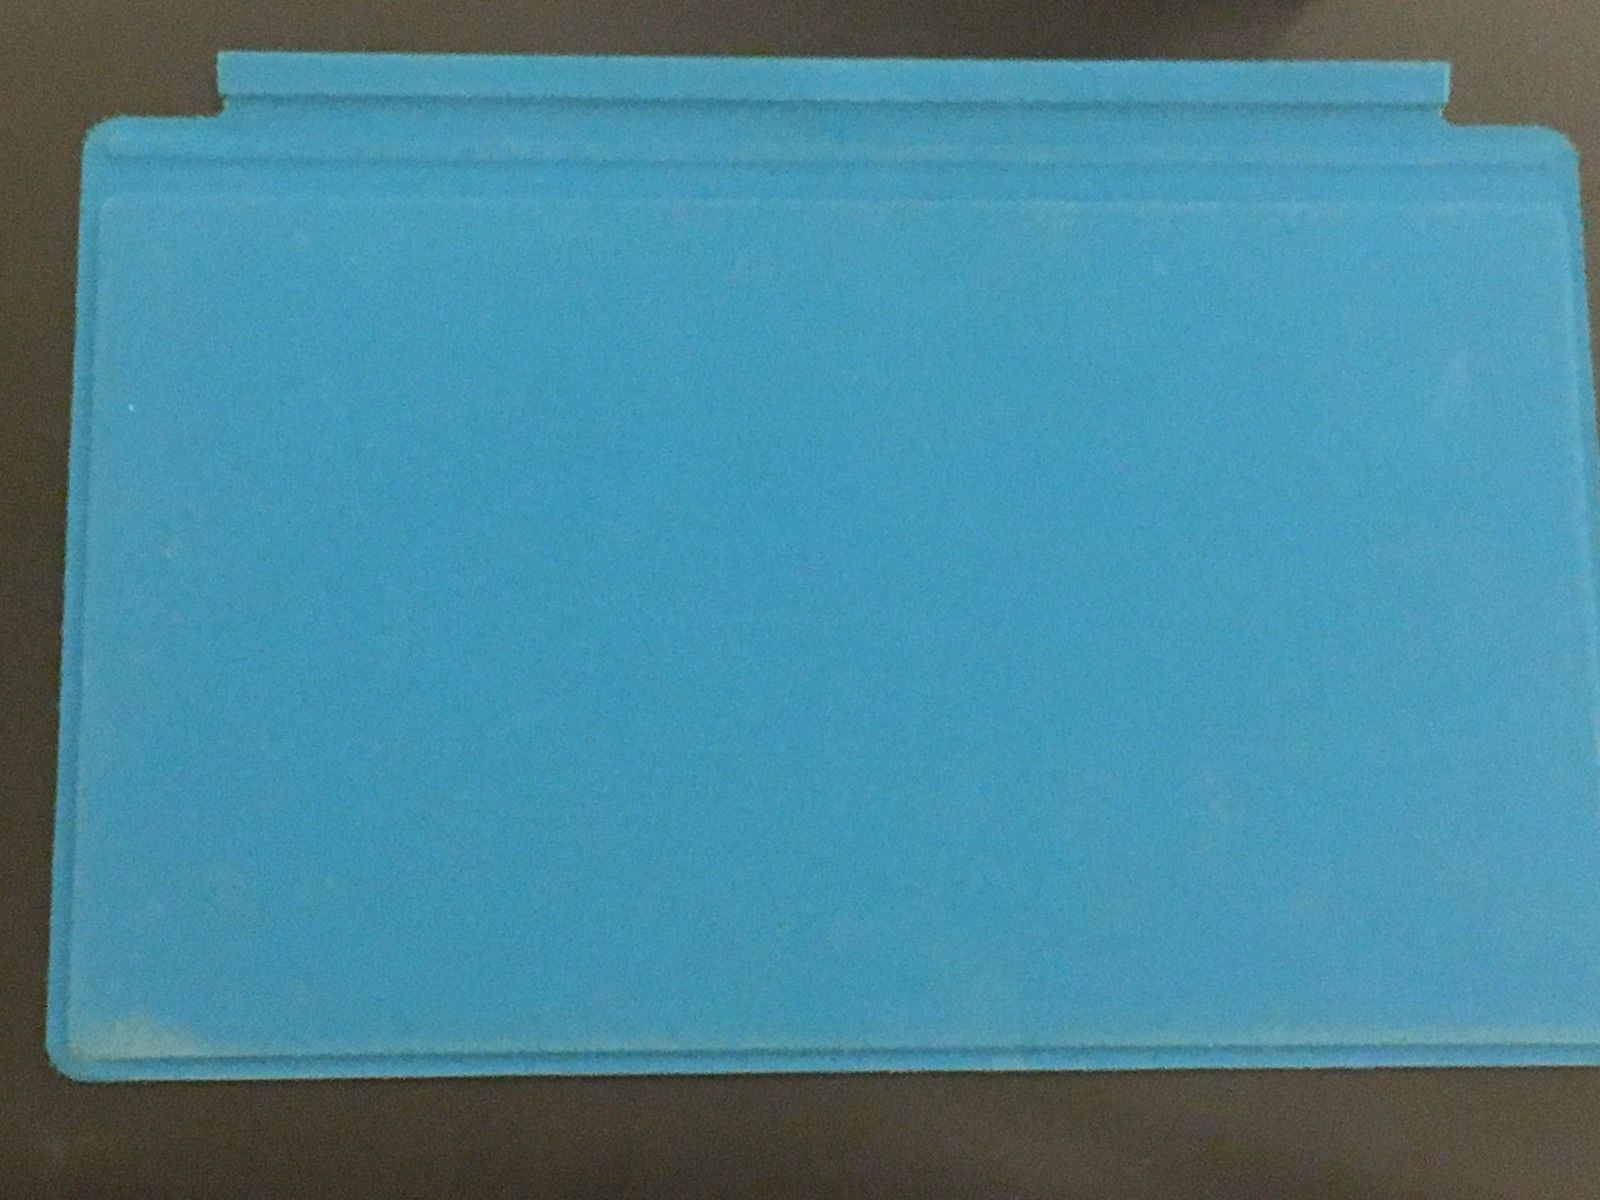 Microsoft Surface Touch Cover Keyboard | Cyan Blue | Lightly Used, No Defects!